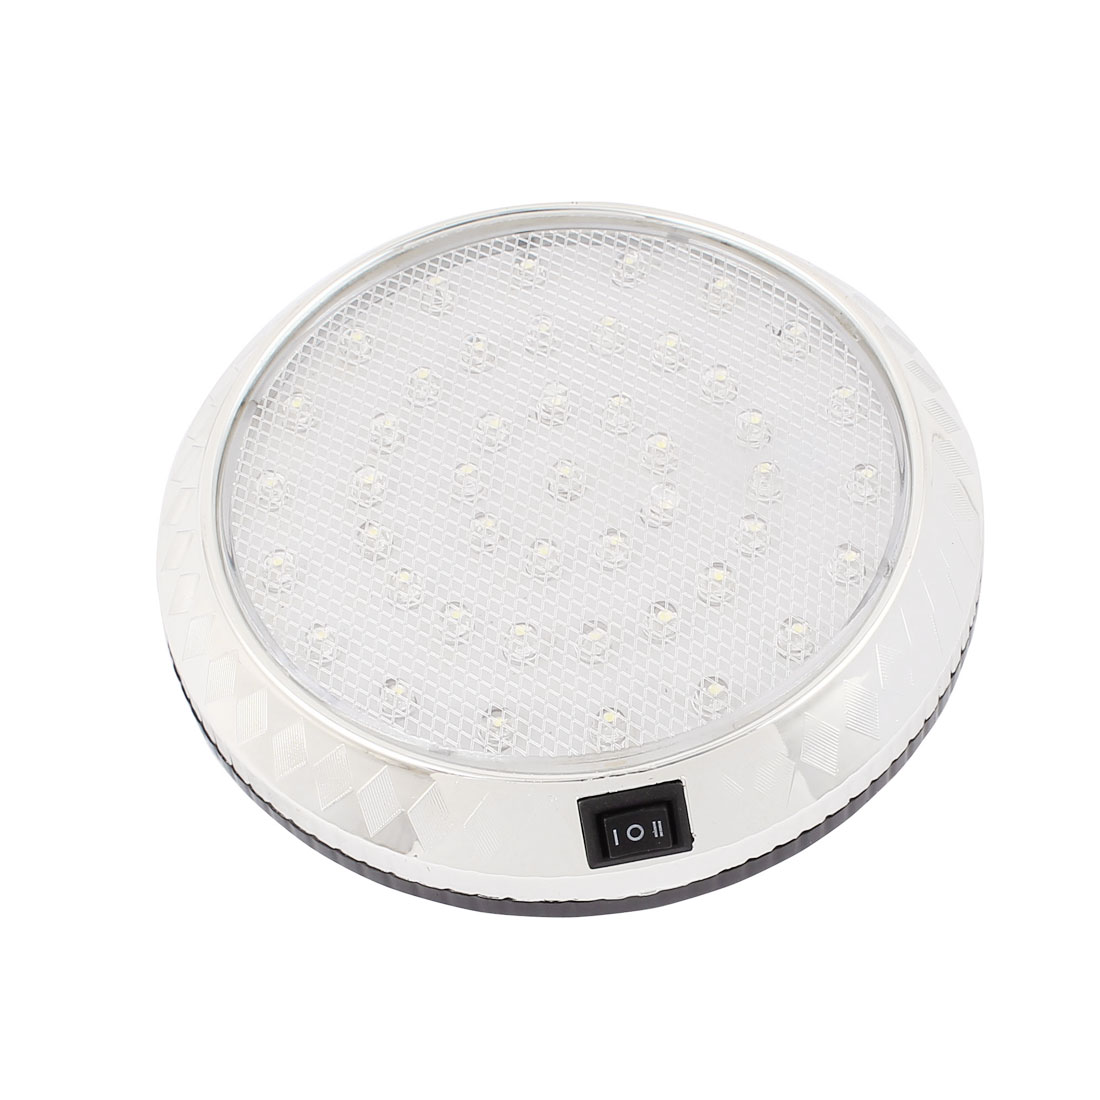 DC 12V White 46 LED Car Round Dome Roof Ceiling Interior Light Lamp